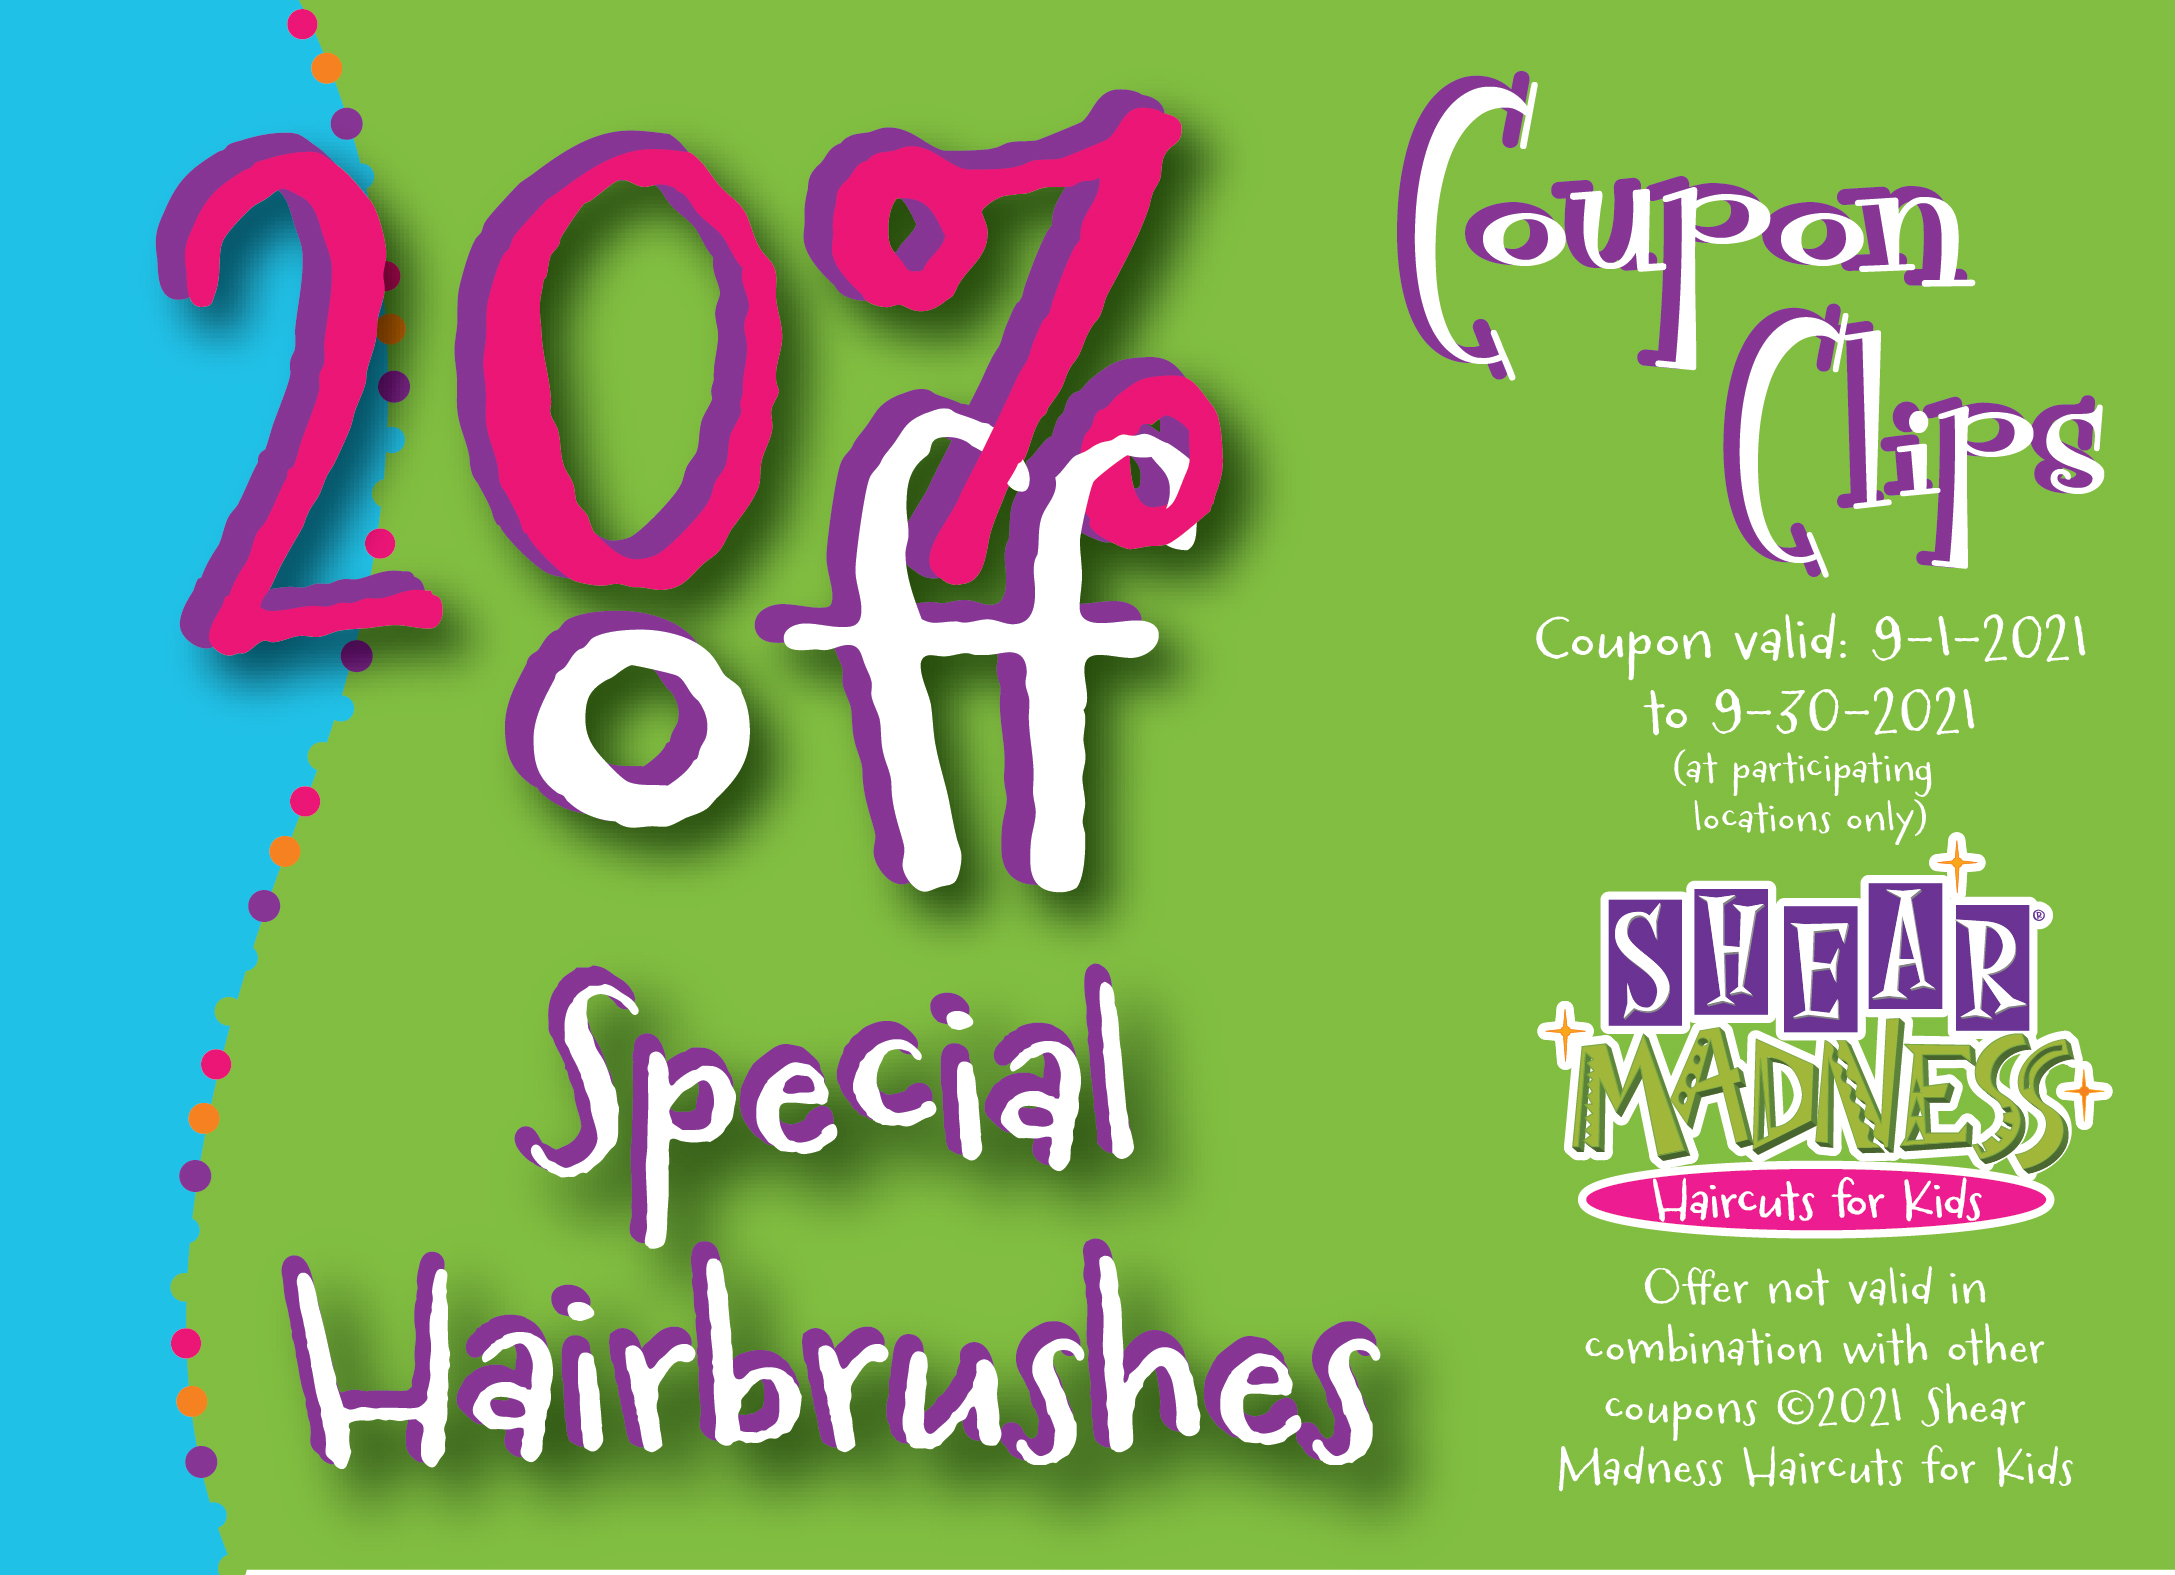 20% off Special Hairbrushes21-01